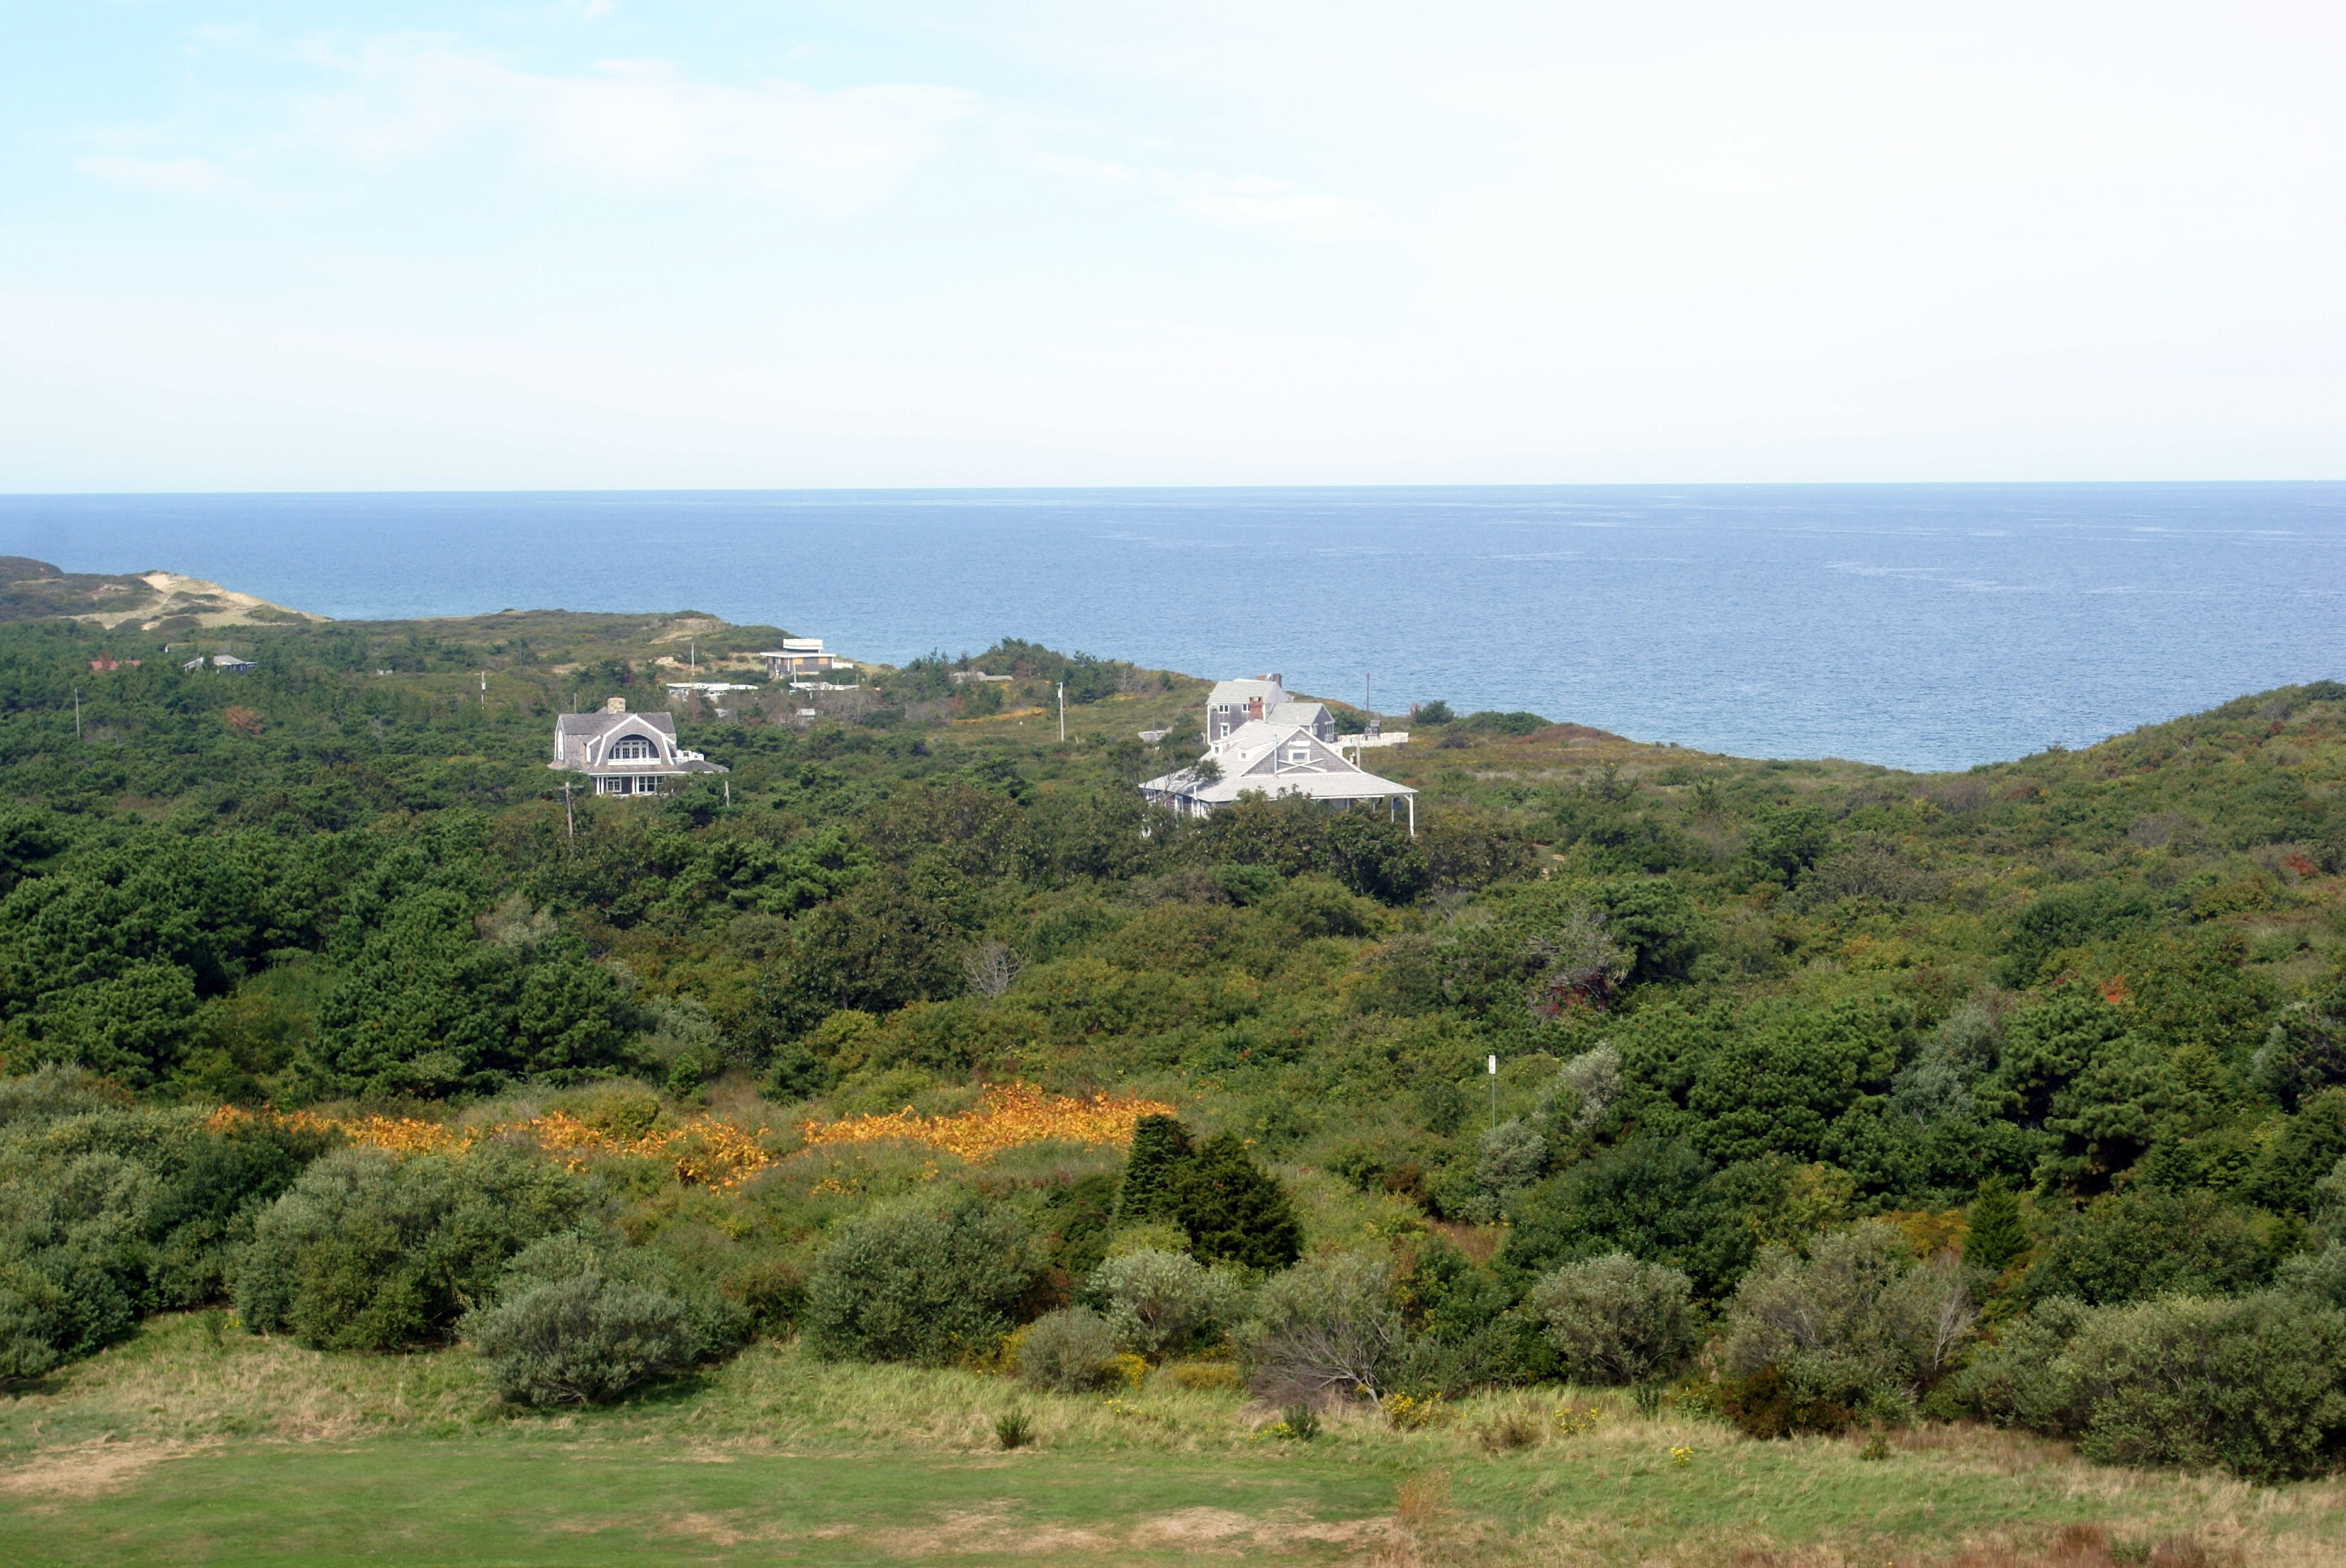 View from Highland Lighthouse, Cape Cod (they say on a clear day you can see Nova Scotia)